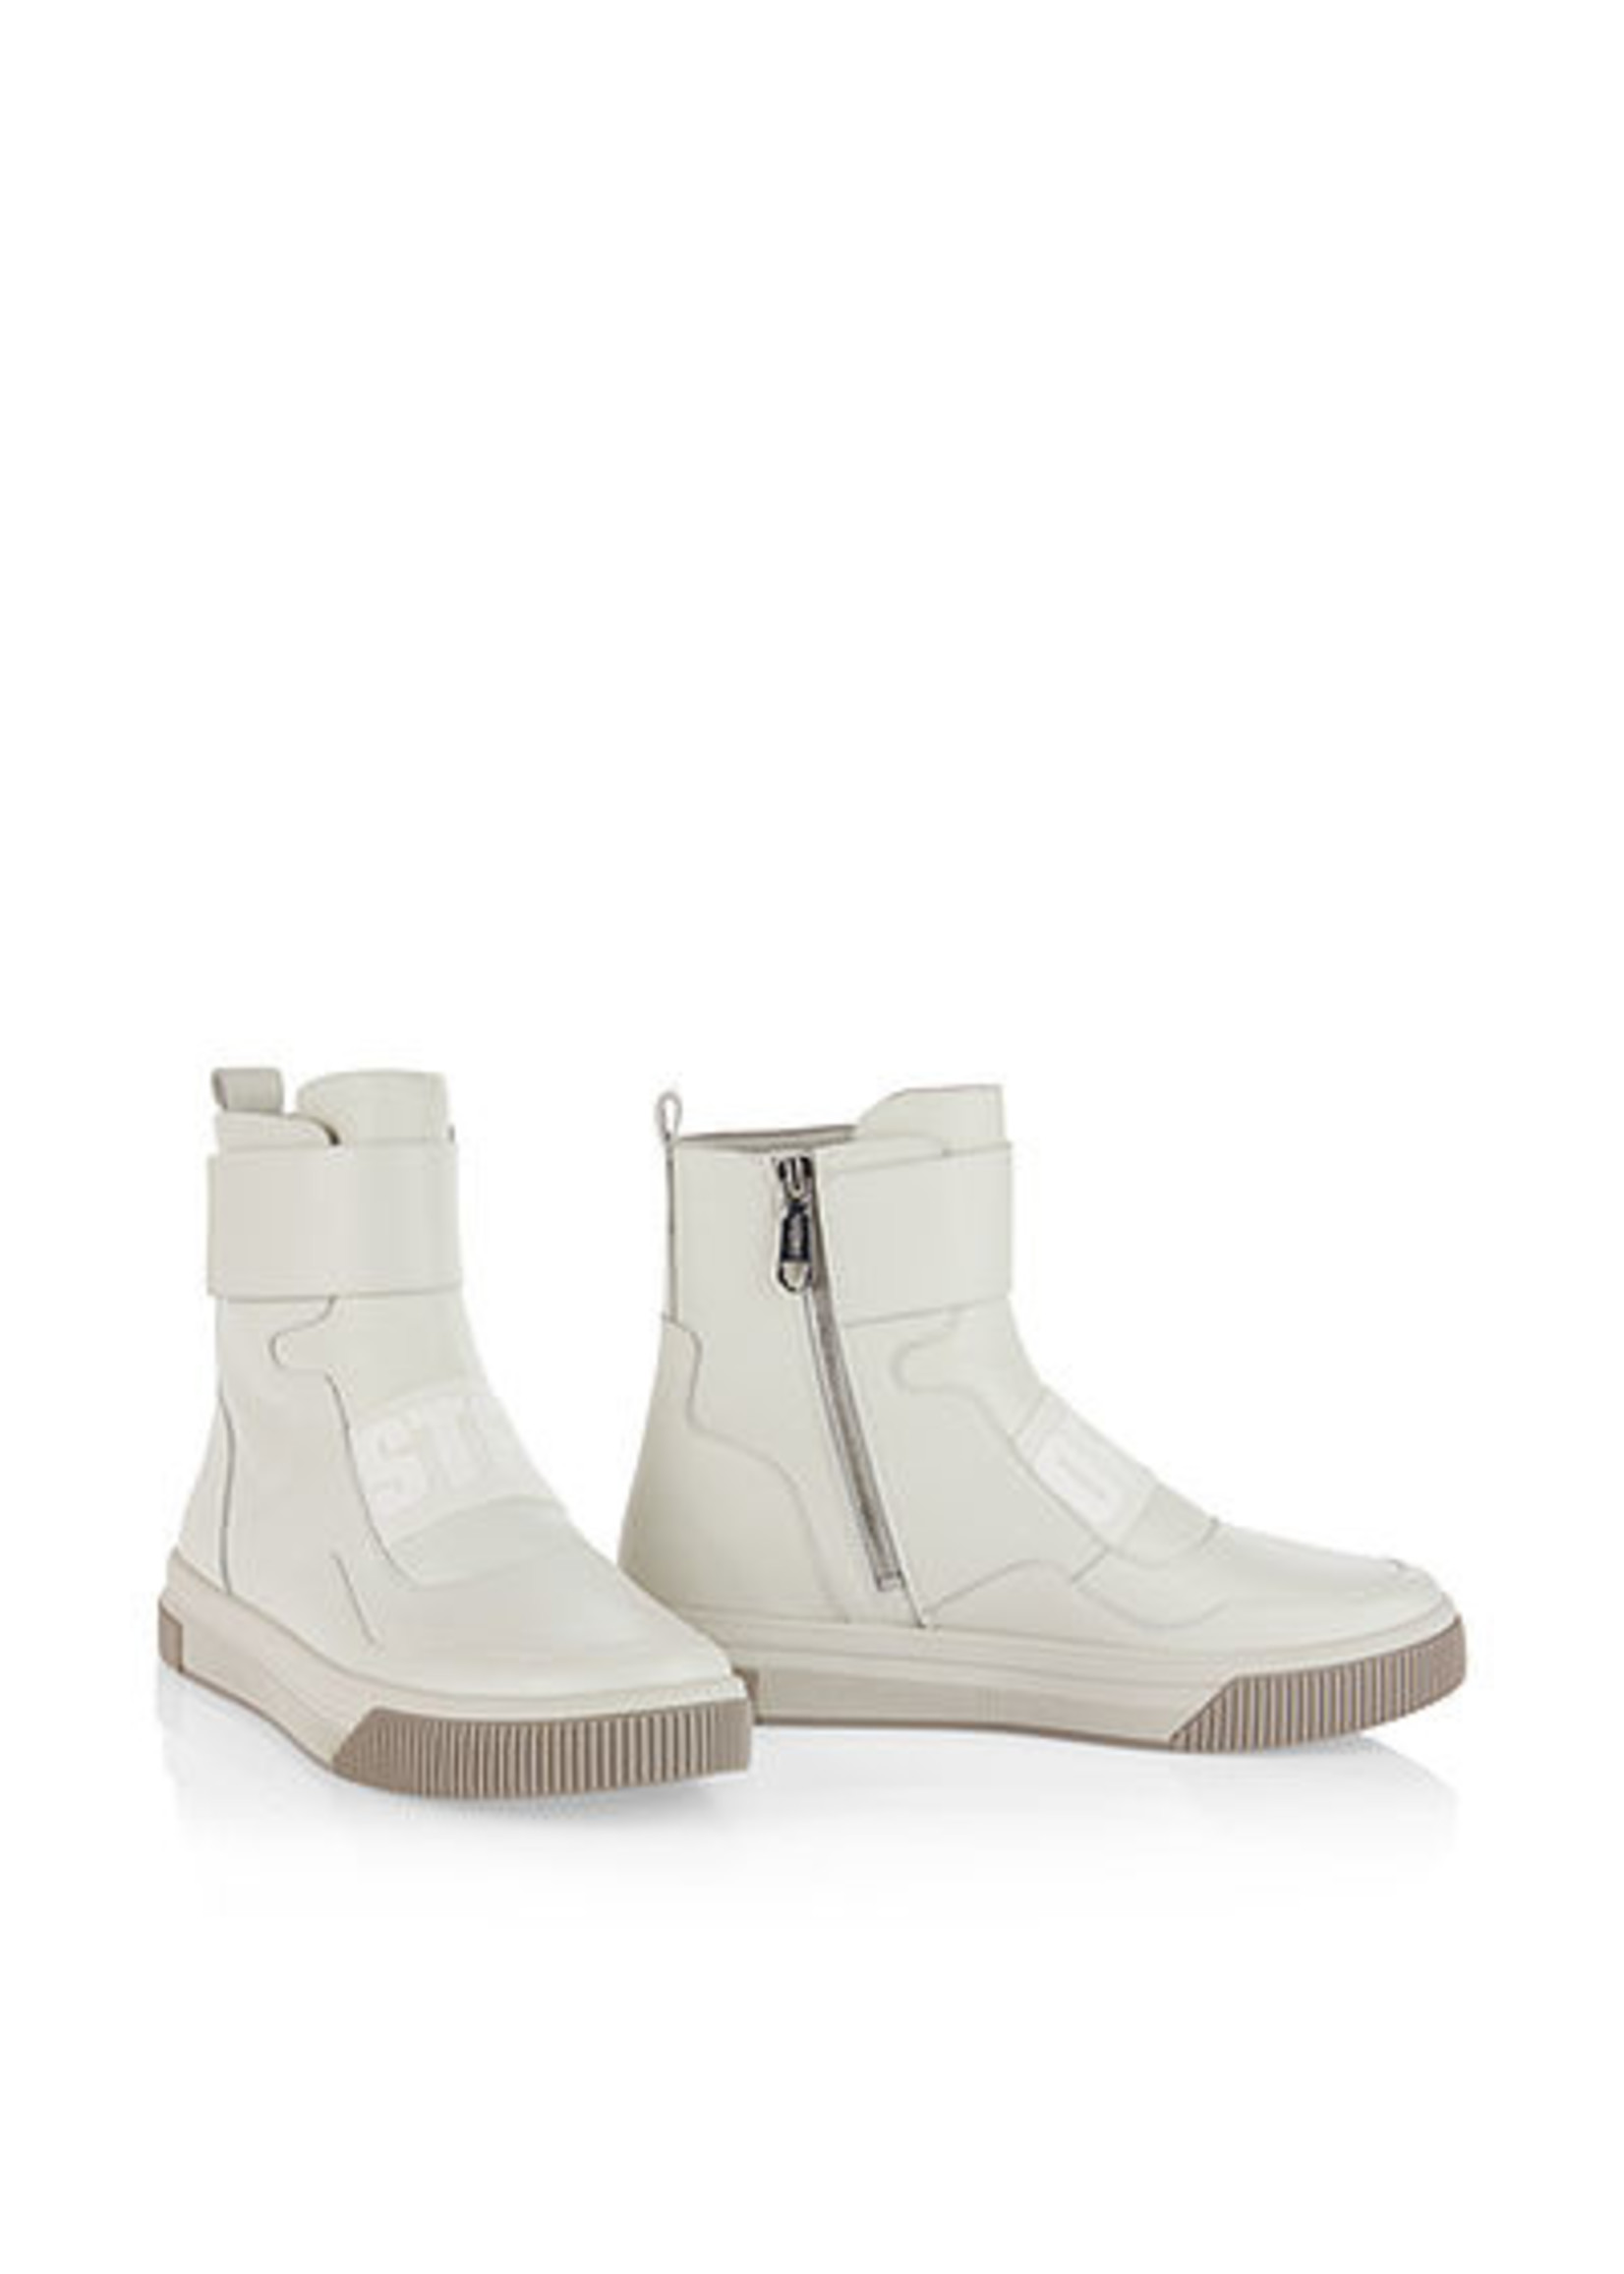 Marccain Bags & Shoes Sneaker RB SH.06 L12 off-white